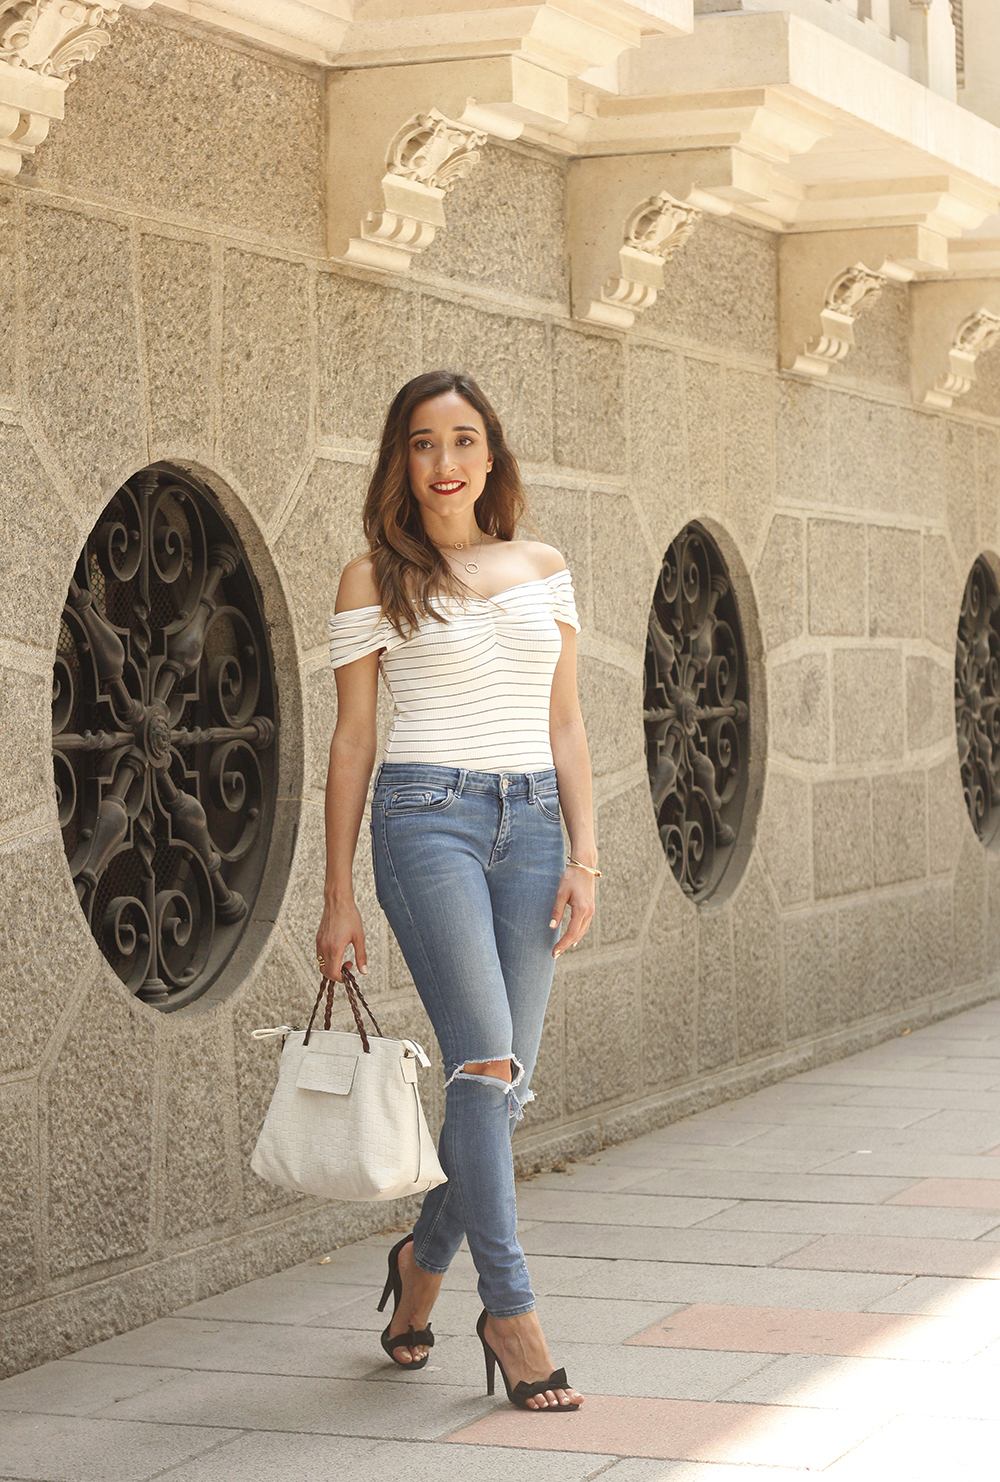 striped body ripped jeans casual outfit black sandals street style summer 201806